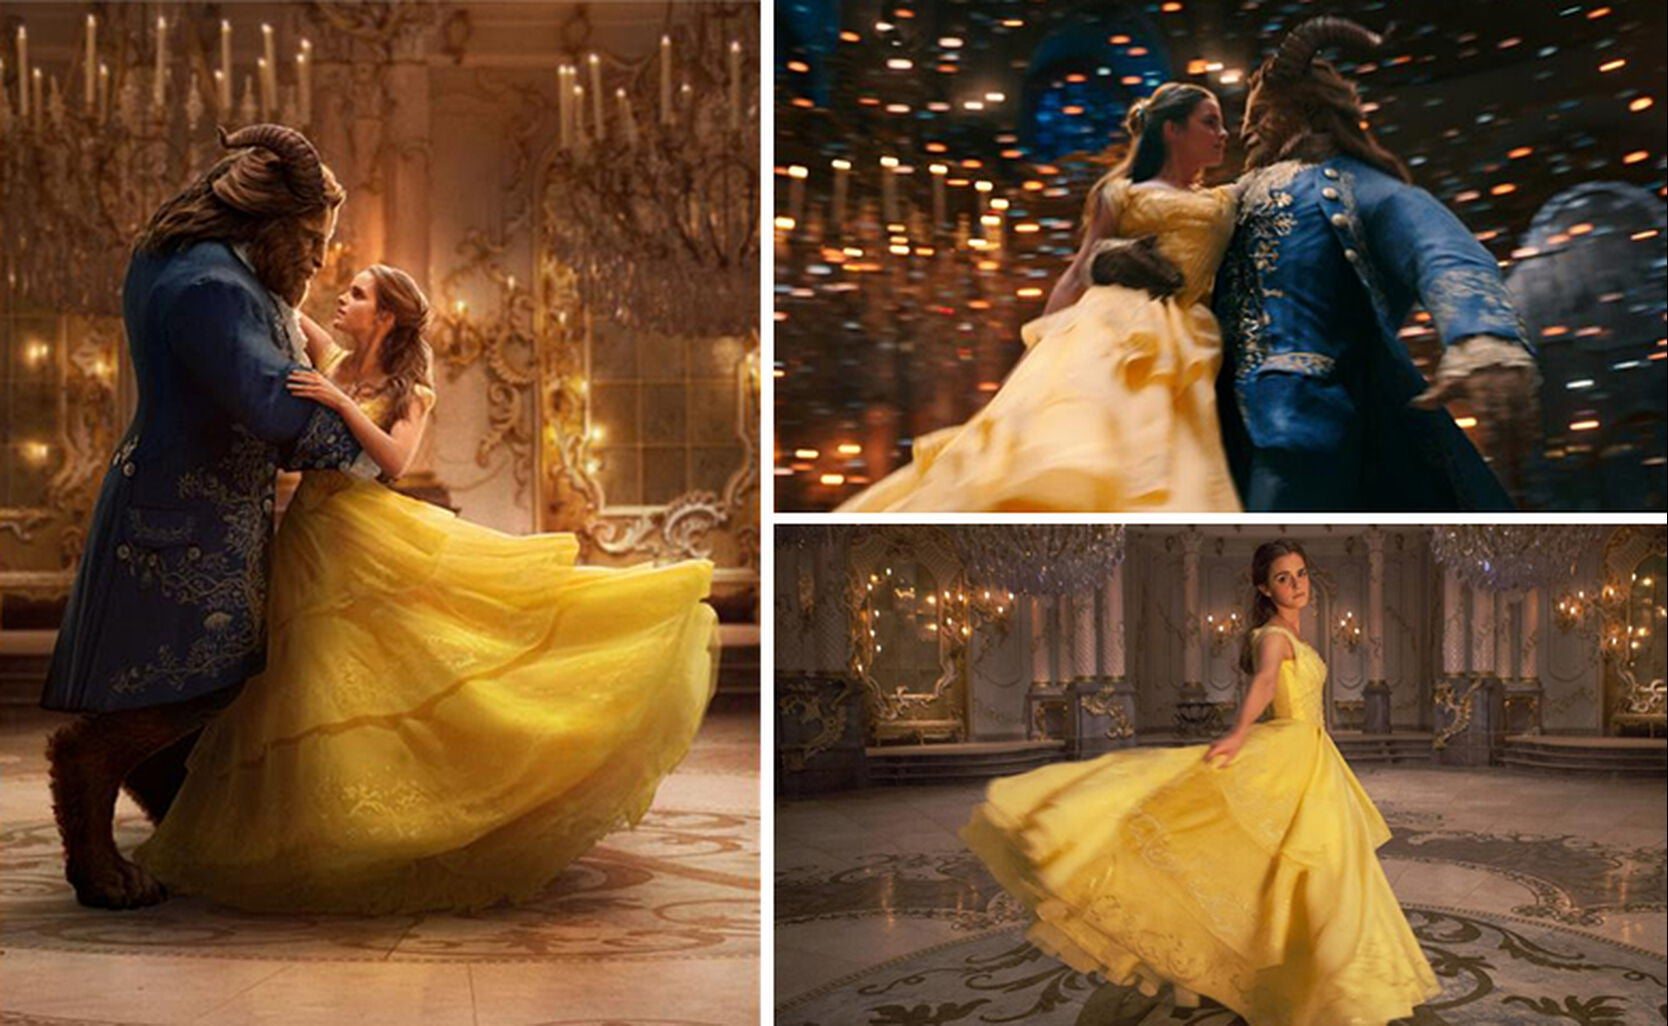 Scenes From Beauty And The Beast Movie With Emma Watson Dan Stevens